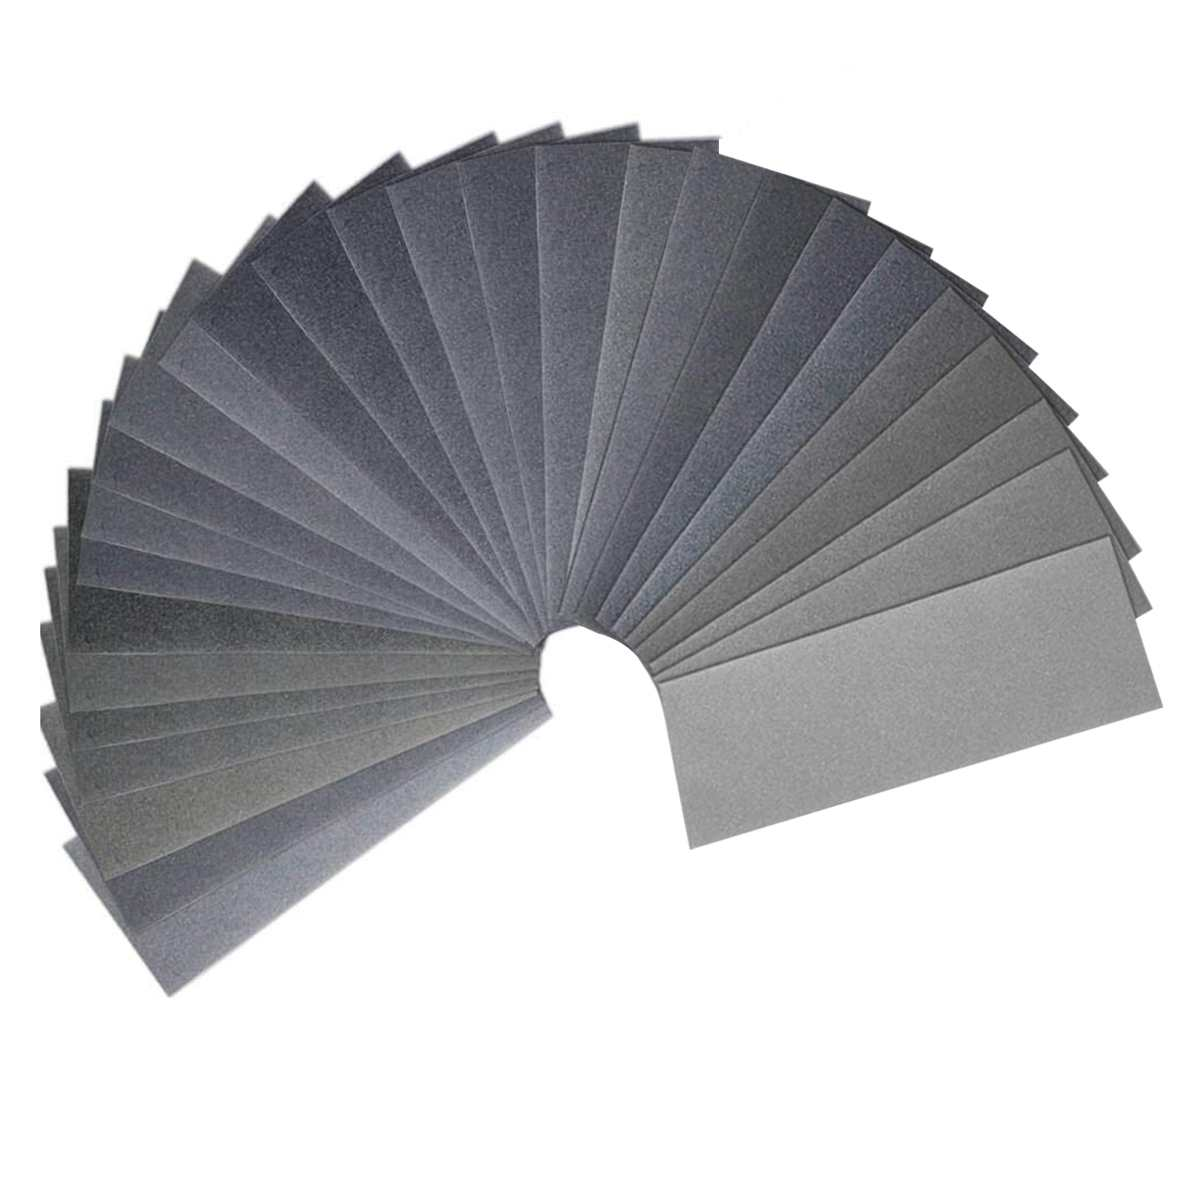 120 To 7000 Grit Wet Dry Sandpaper Assortment 9 X 3.6 Inches For Automotive Auto Wood Sanding